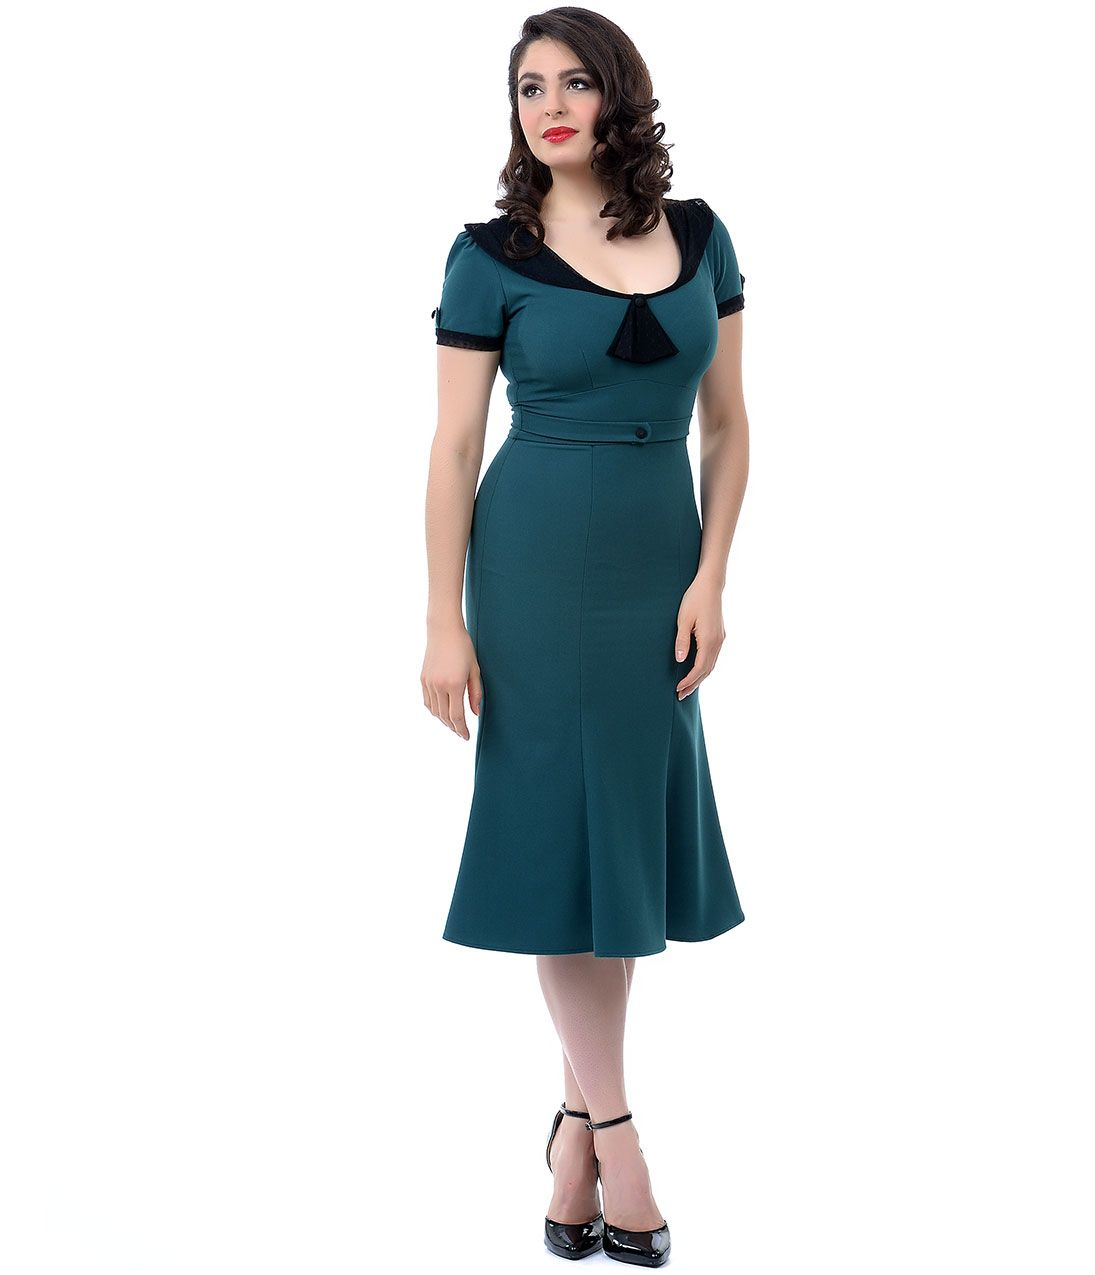 Vintage style s plus size dresses s style s and